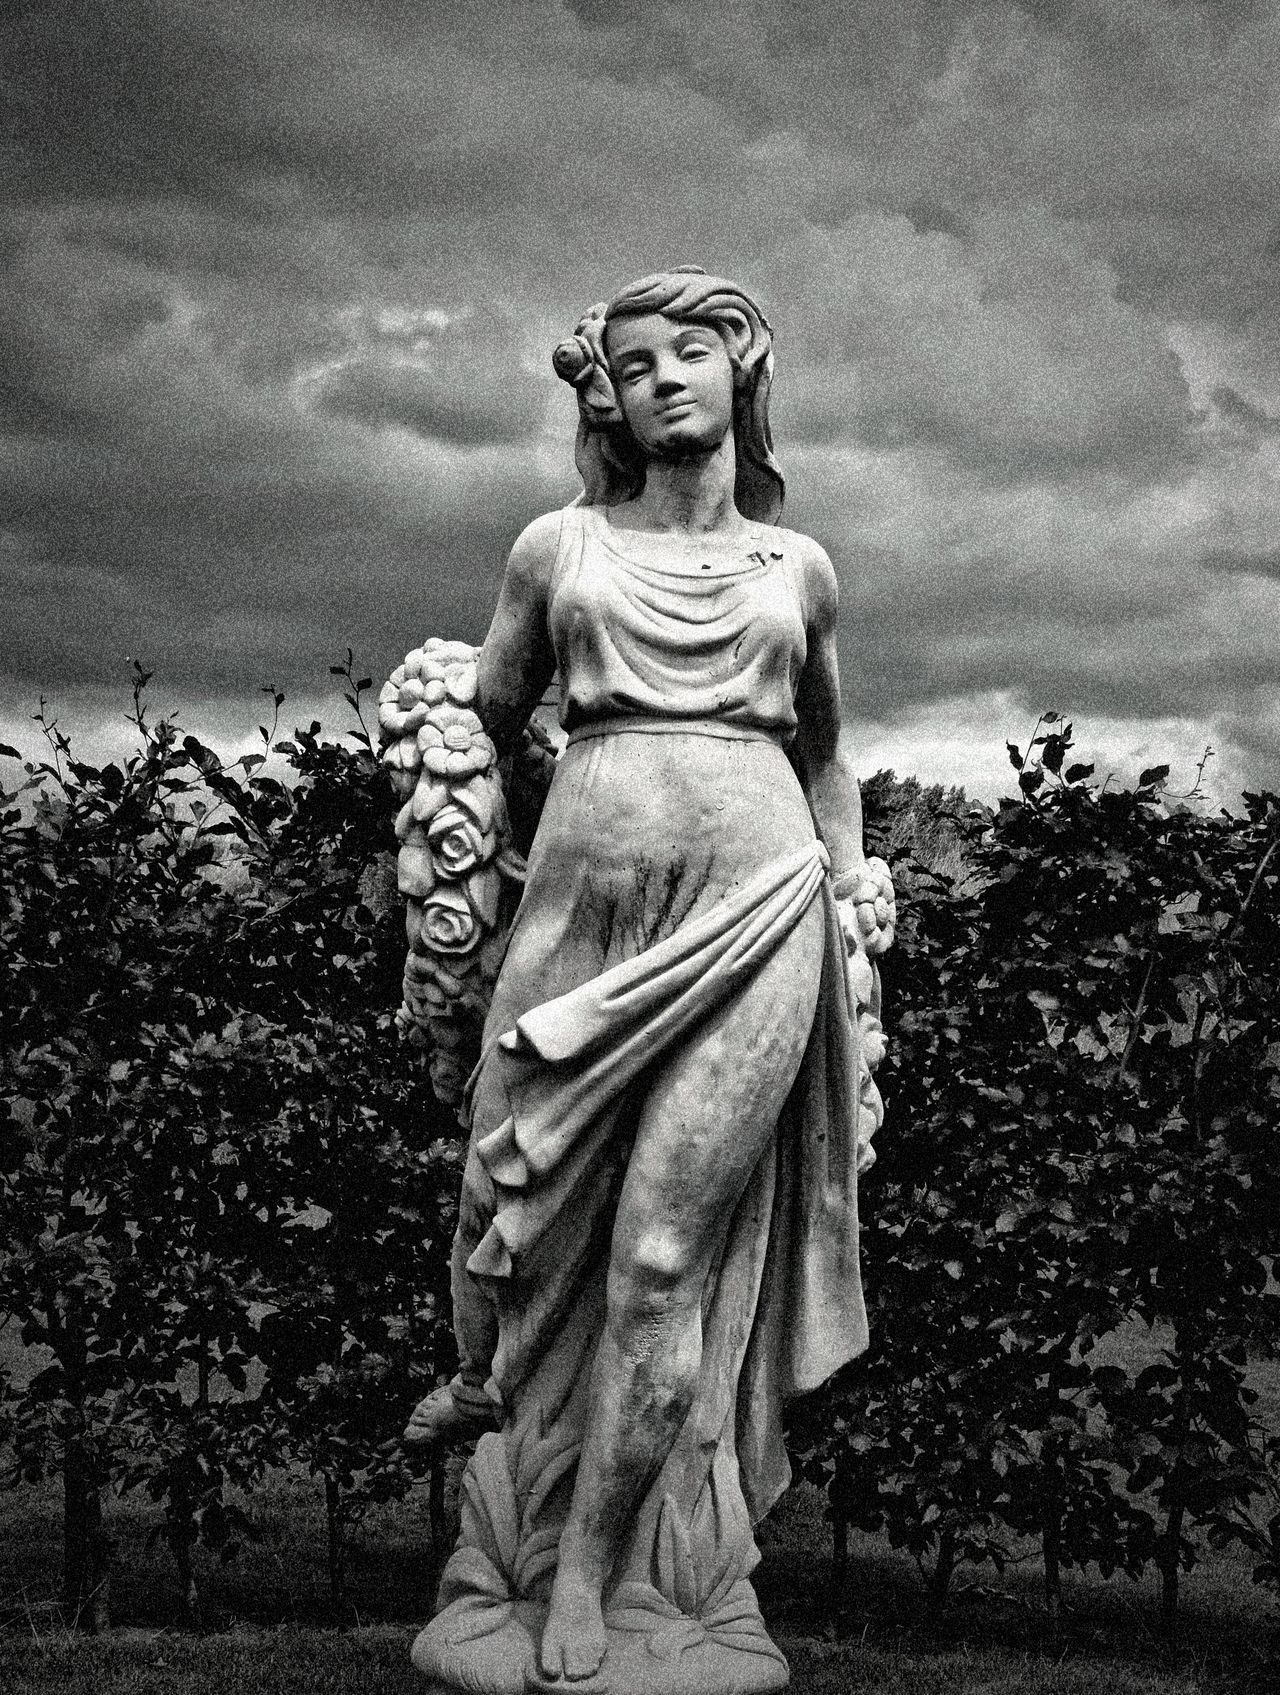 De Meiden van Demen Statue Stone Jixipix Filter Dramatic Black And White